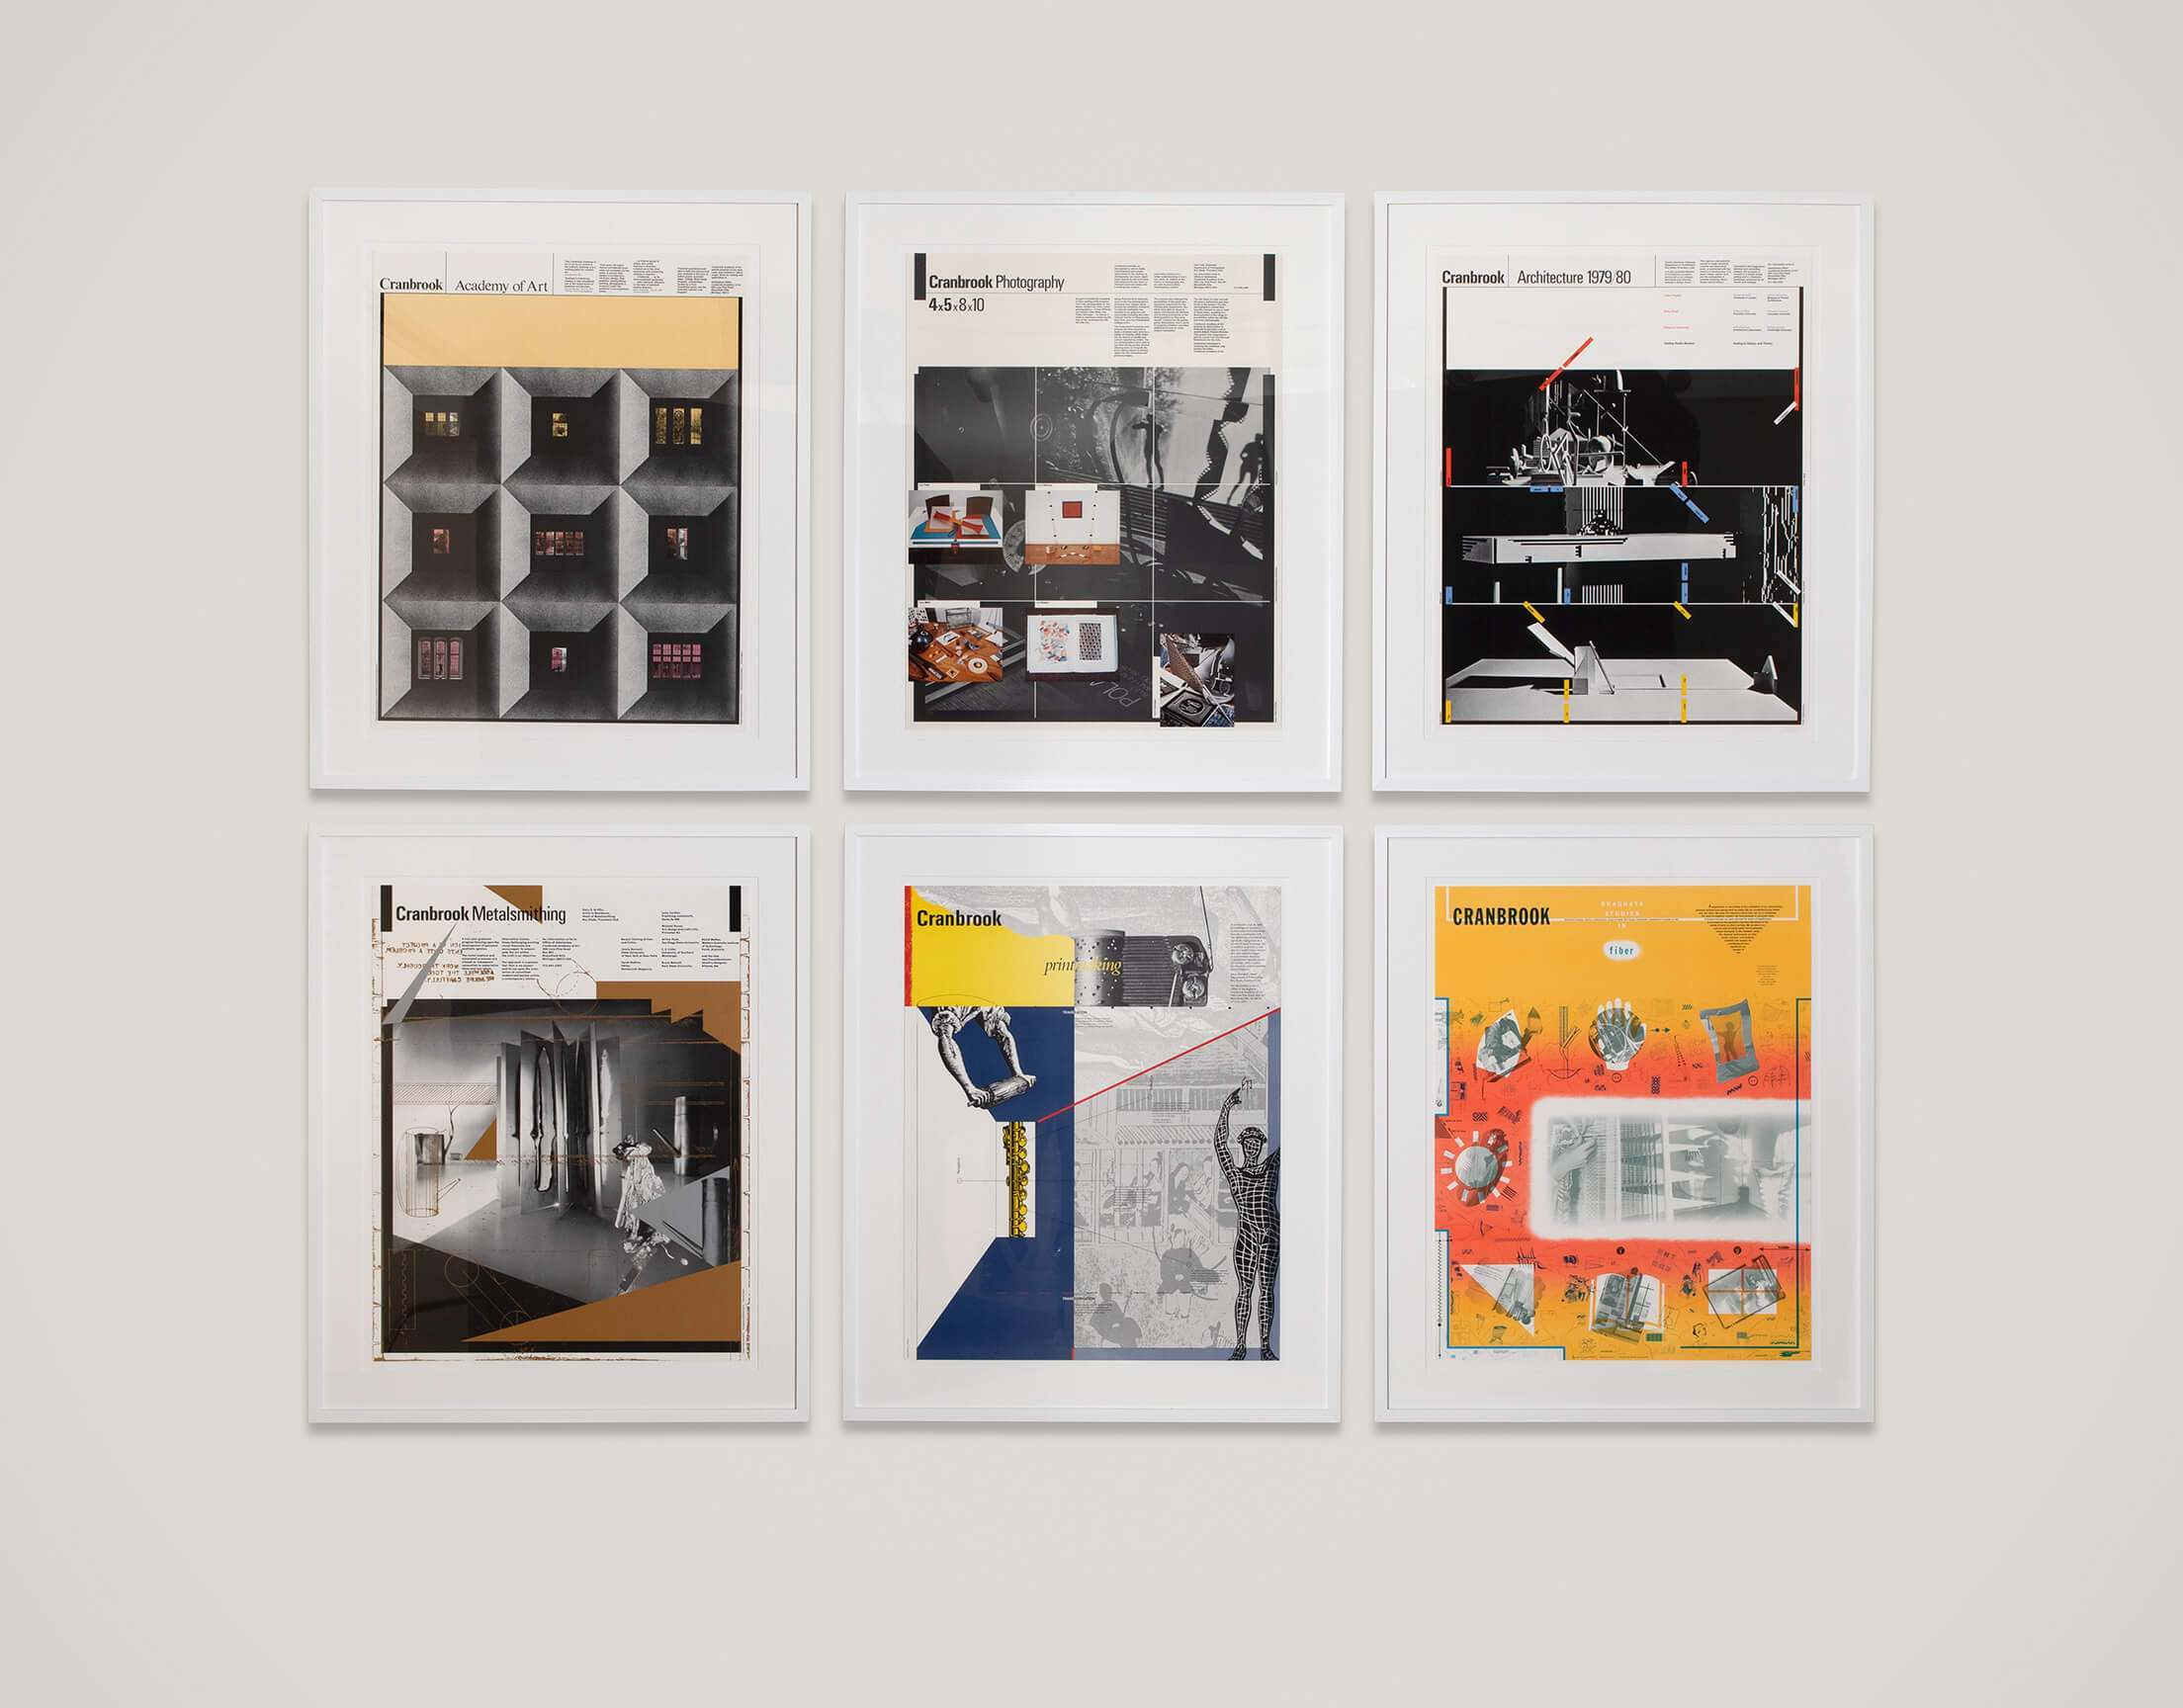 six posters arranged in white frames on white wall in two rows of three. Posters promote programs and Cranbrook Academy of Art.